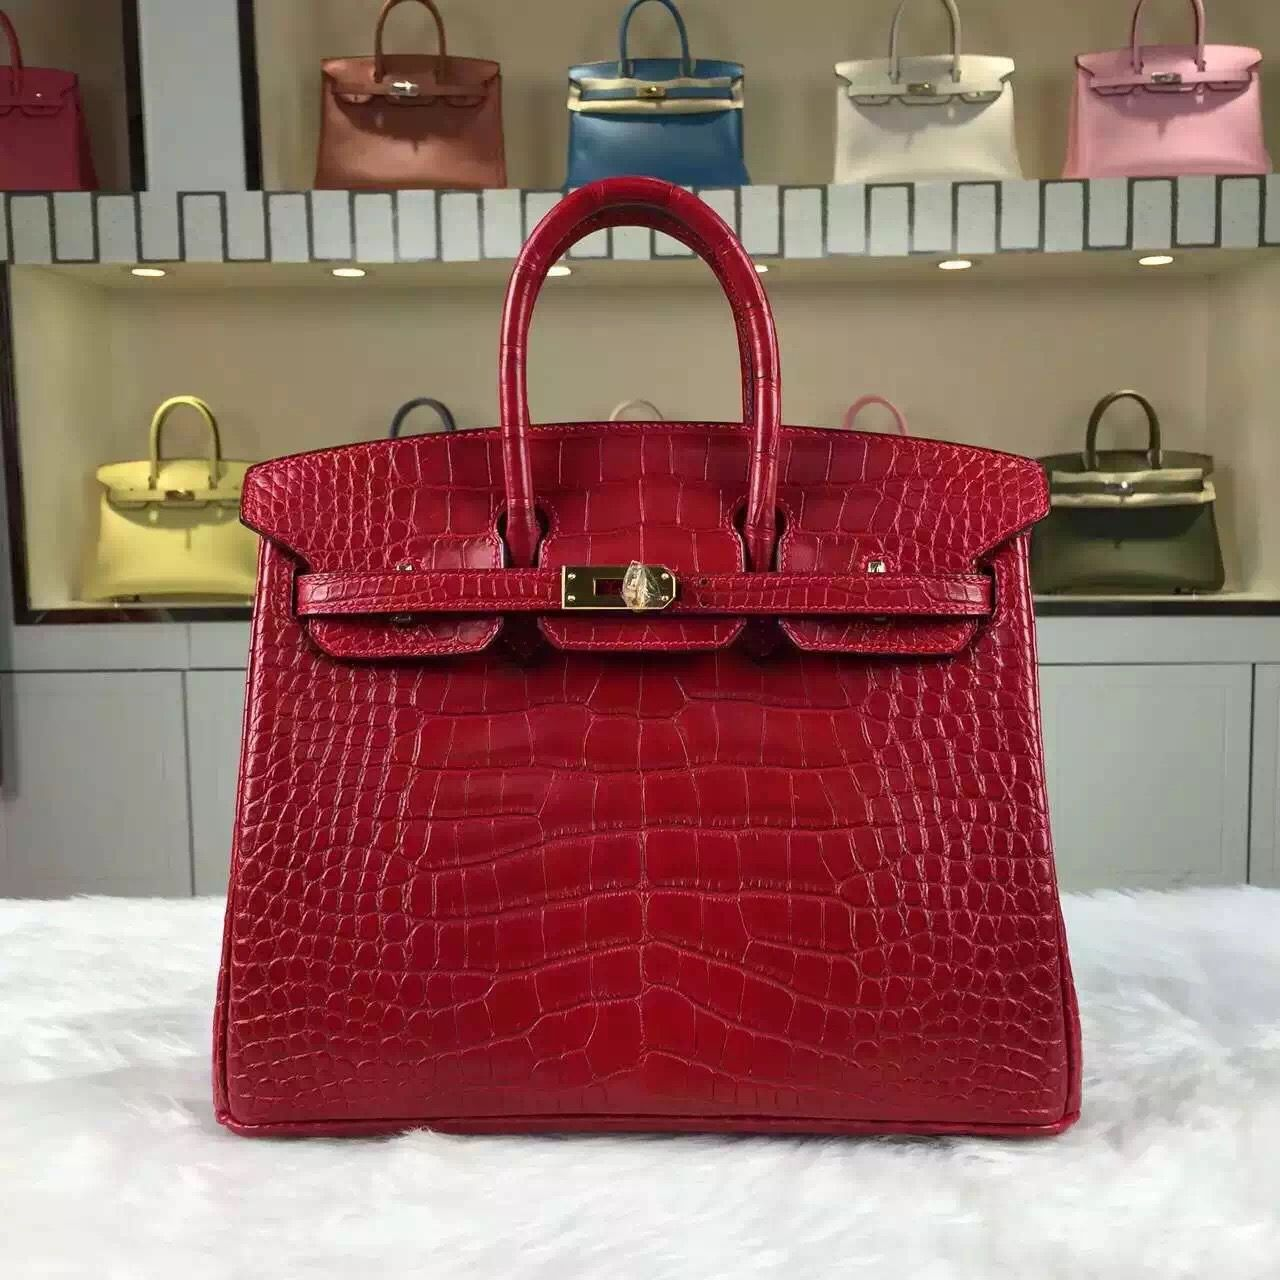 6dc2c262d62f Brand  Hermes  Style  Birkin Bag25cm  Material Crocodile Matt Leather (HCP  original leather) Color  Red  Hardware  Silver Gold  Accessories  Padlock  and ...